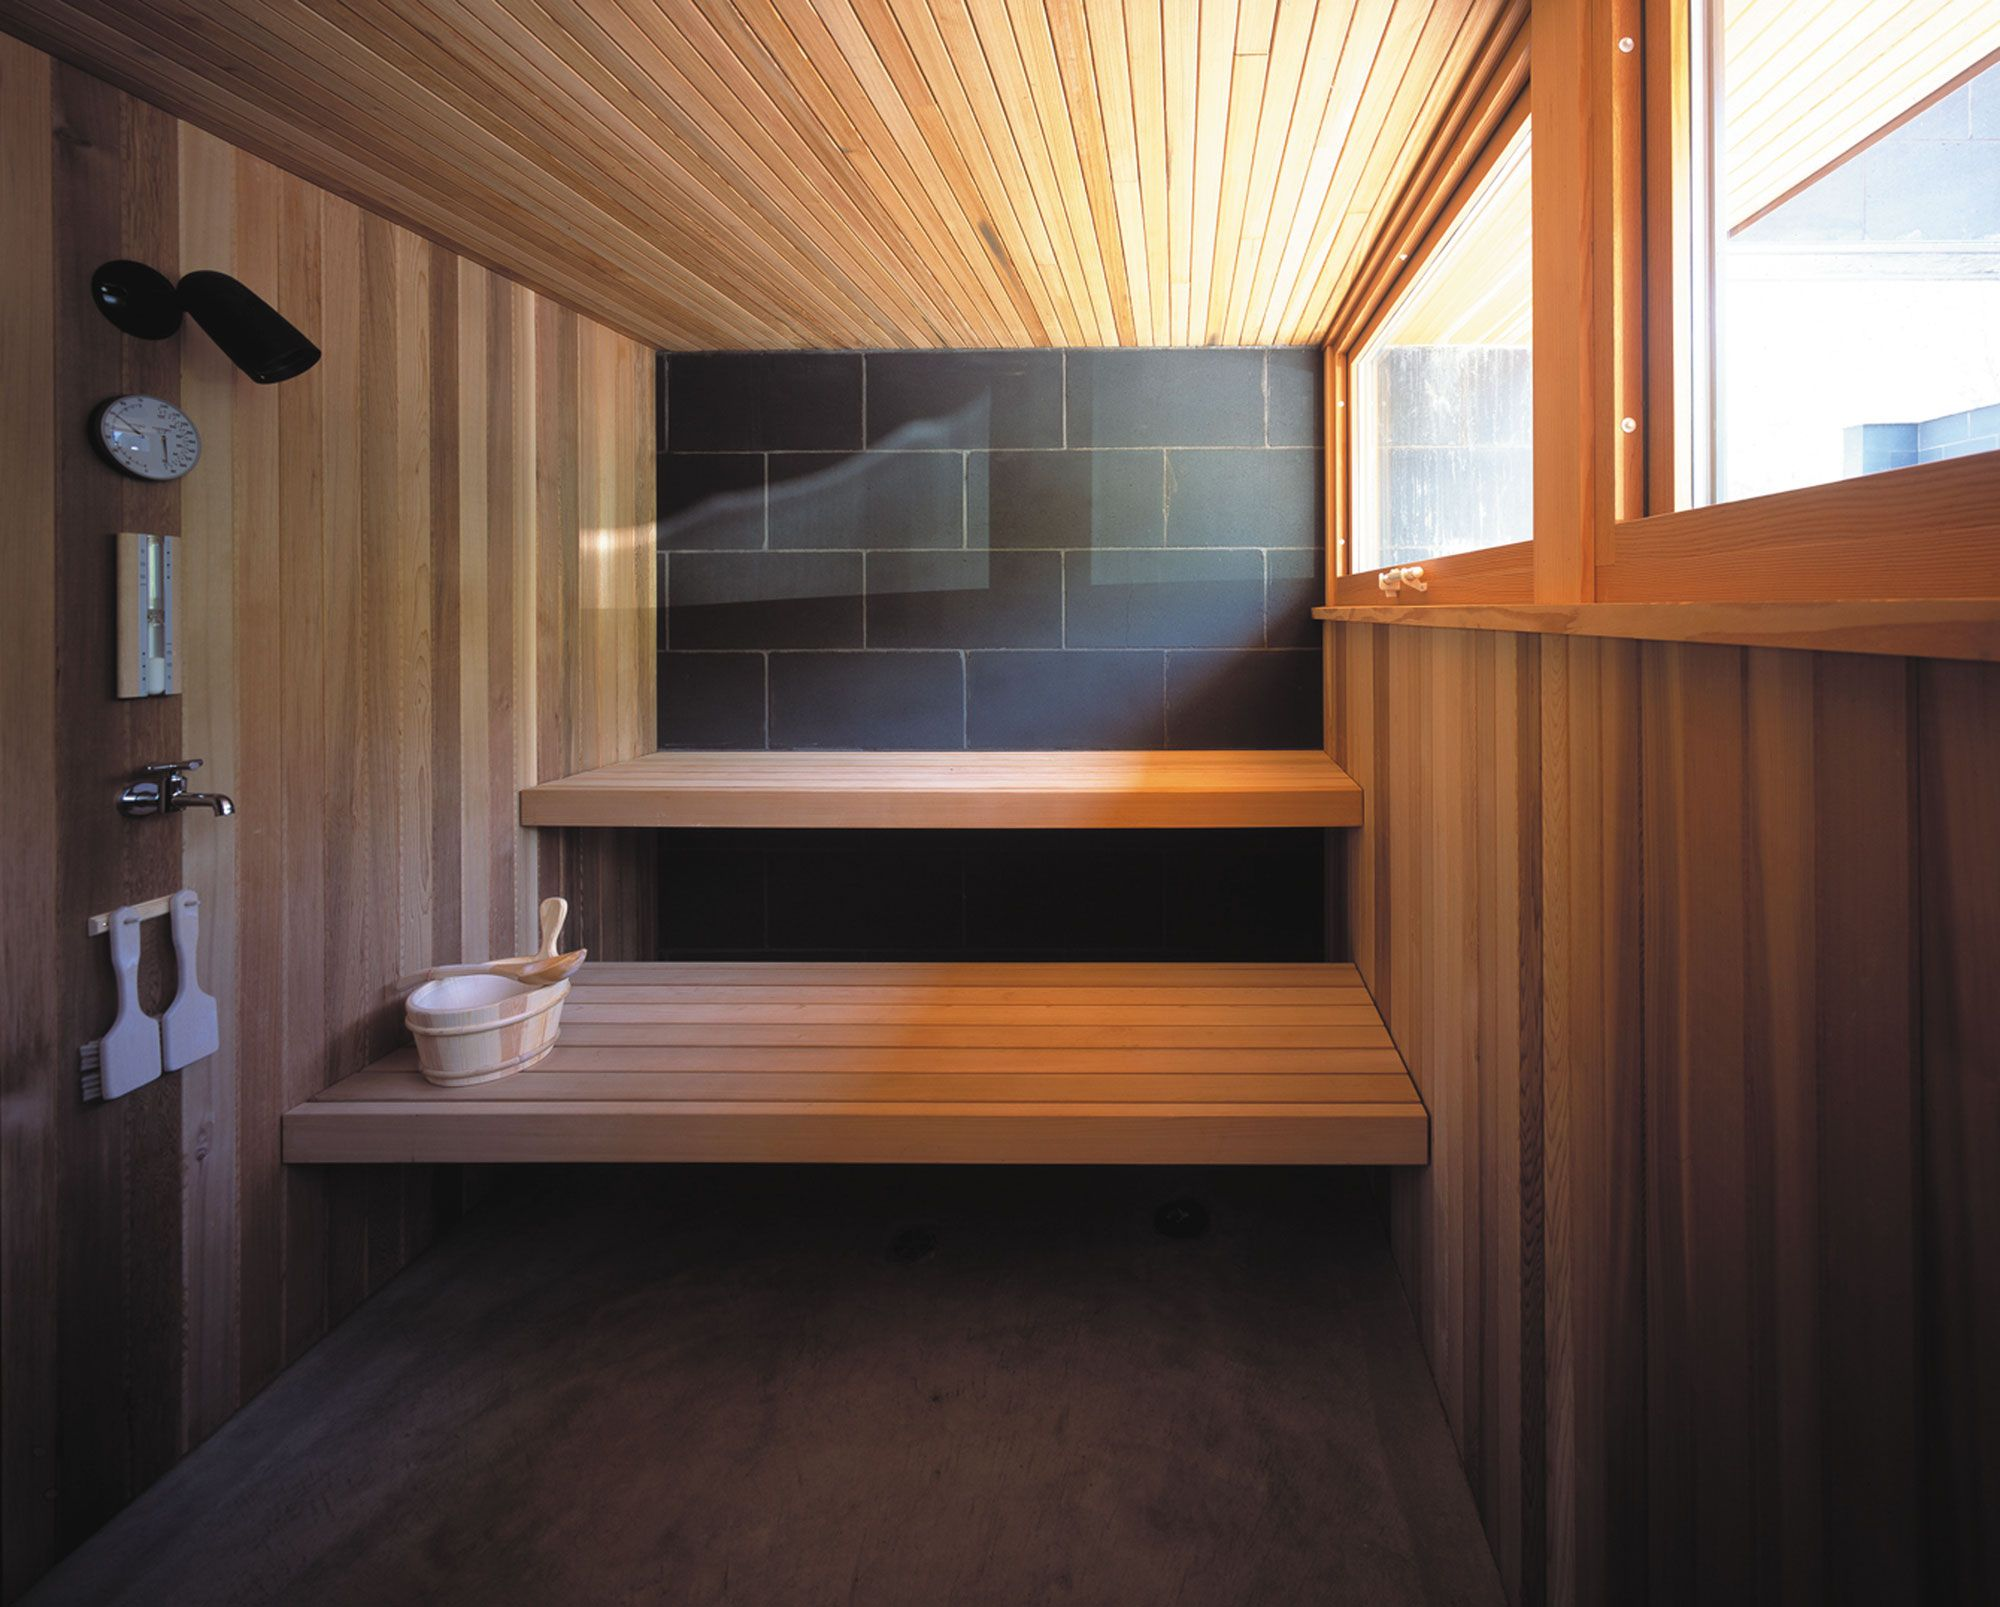 mood board sauna david salmela sauna mid century modern. Black Bedroom Furniture Sets. Home Design Ideas